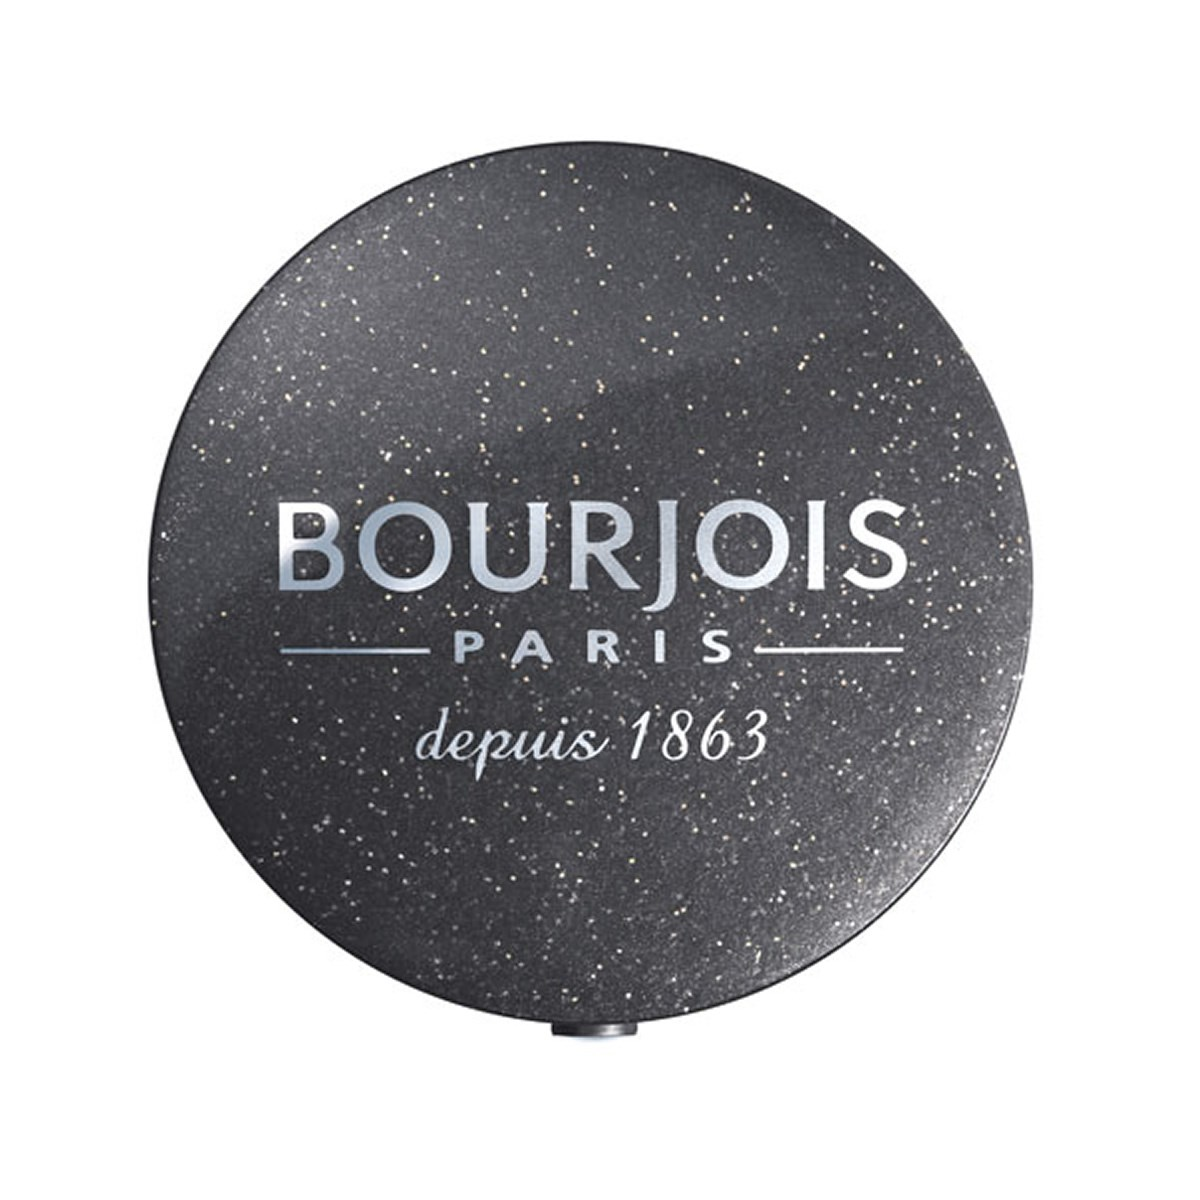 Bourjois Little Round Pot Eyeshadow 92 Glitter